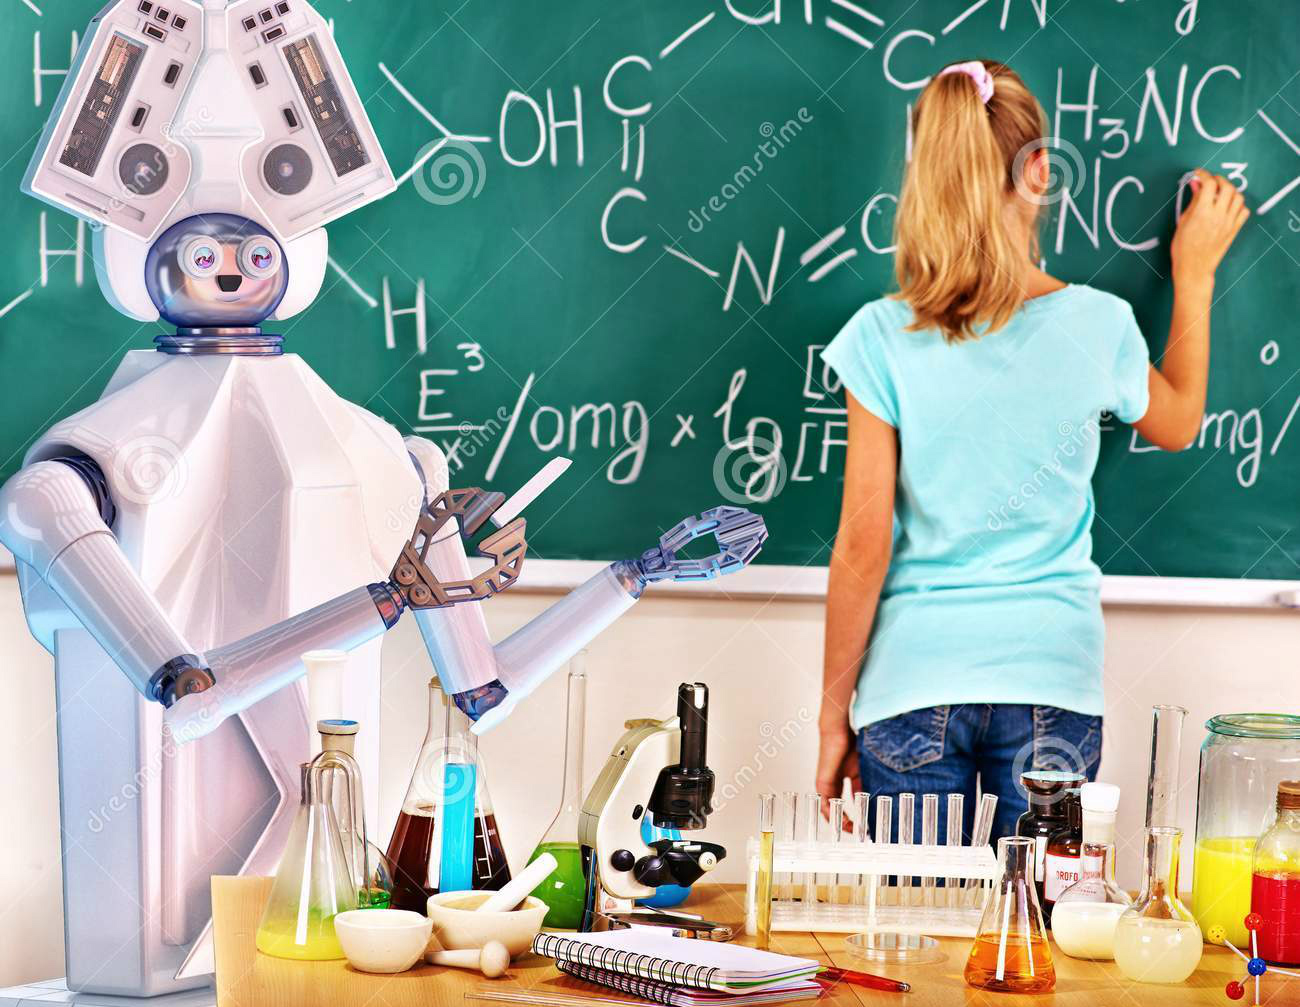 Girl has interactive online learning chemistry and biology course. Image credit: Dreamstime